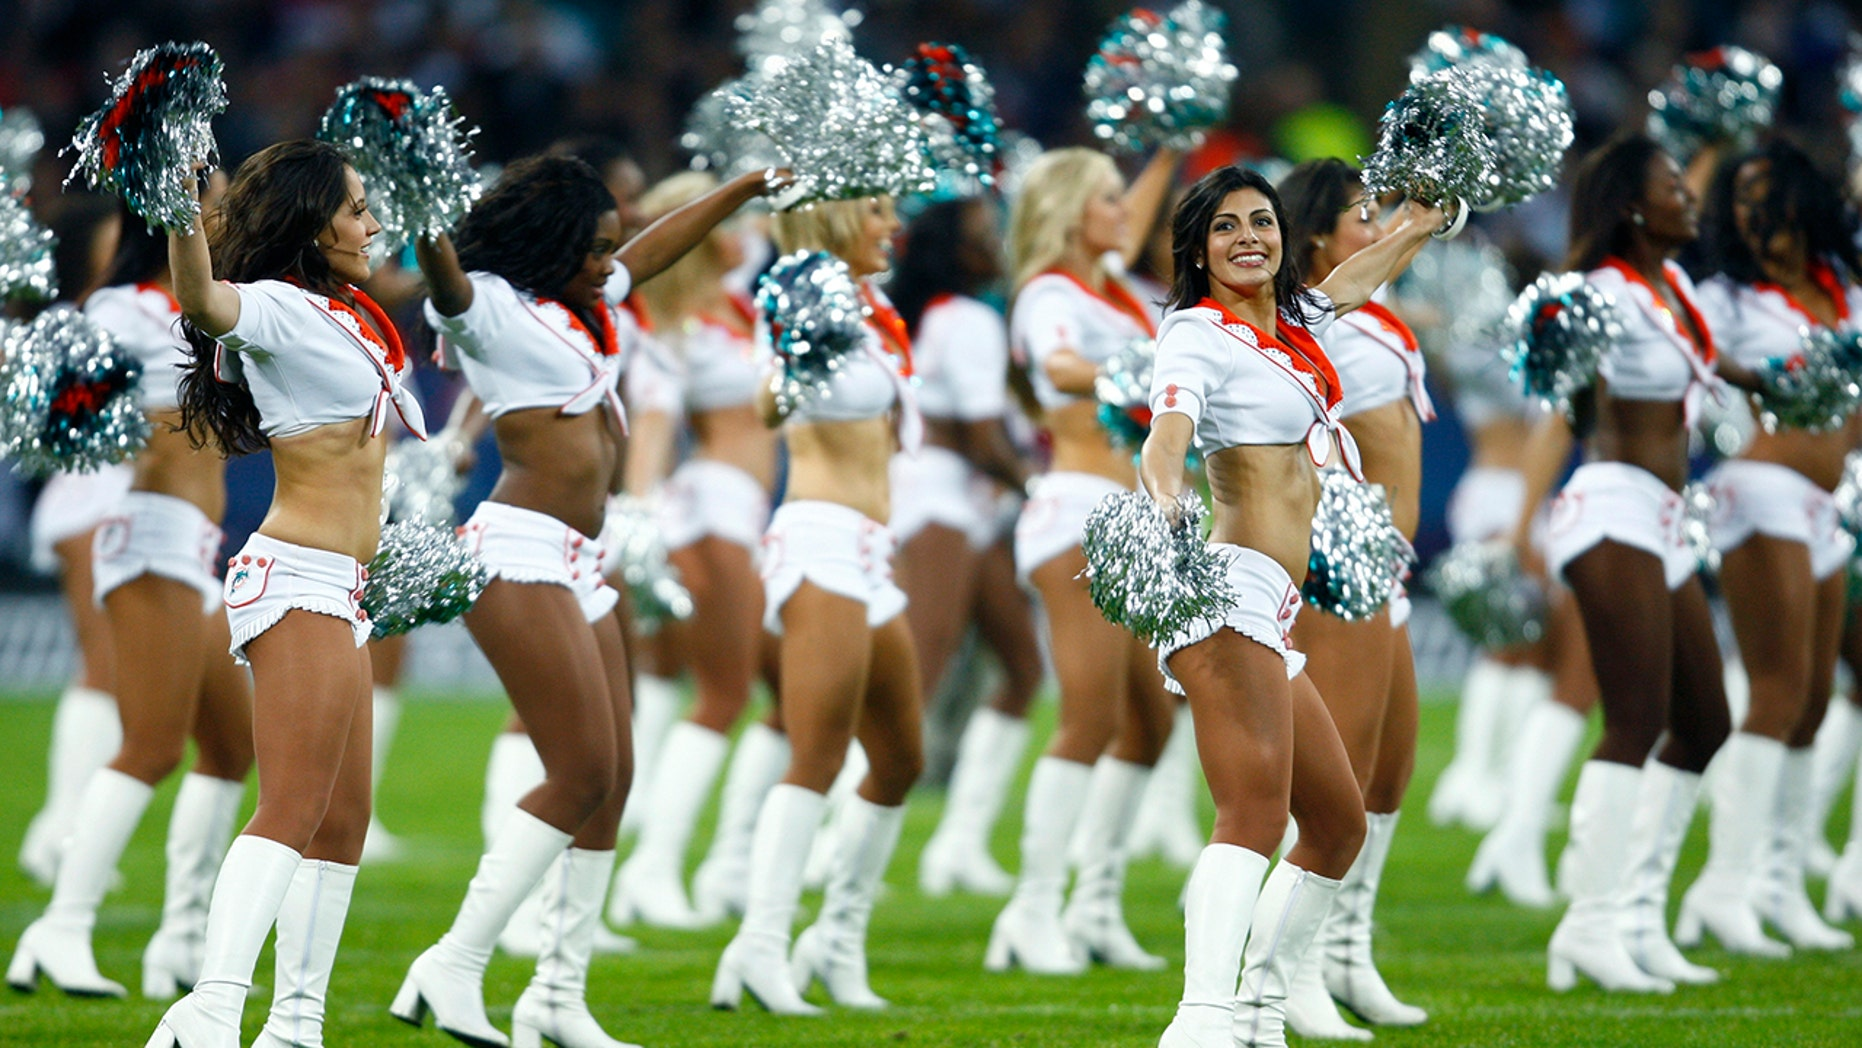 Ex Miami Dolphins cheerleader claims she was mocked over Christian  supplier